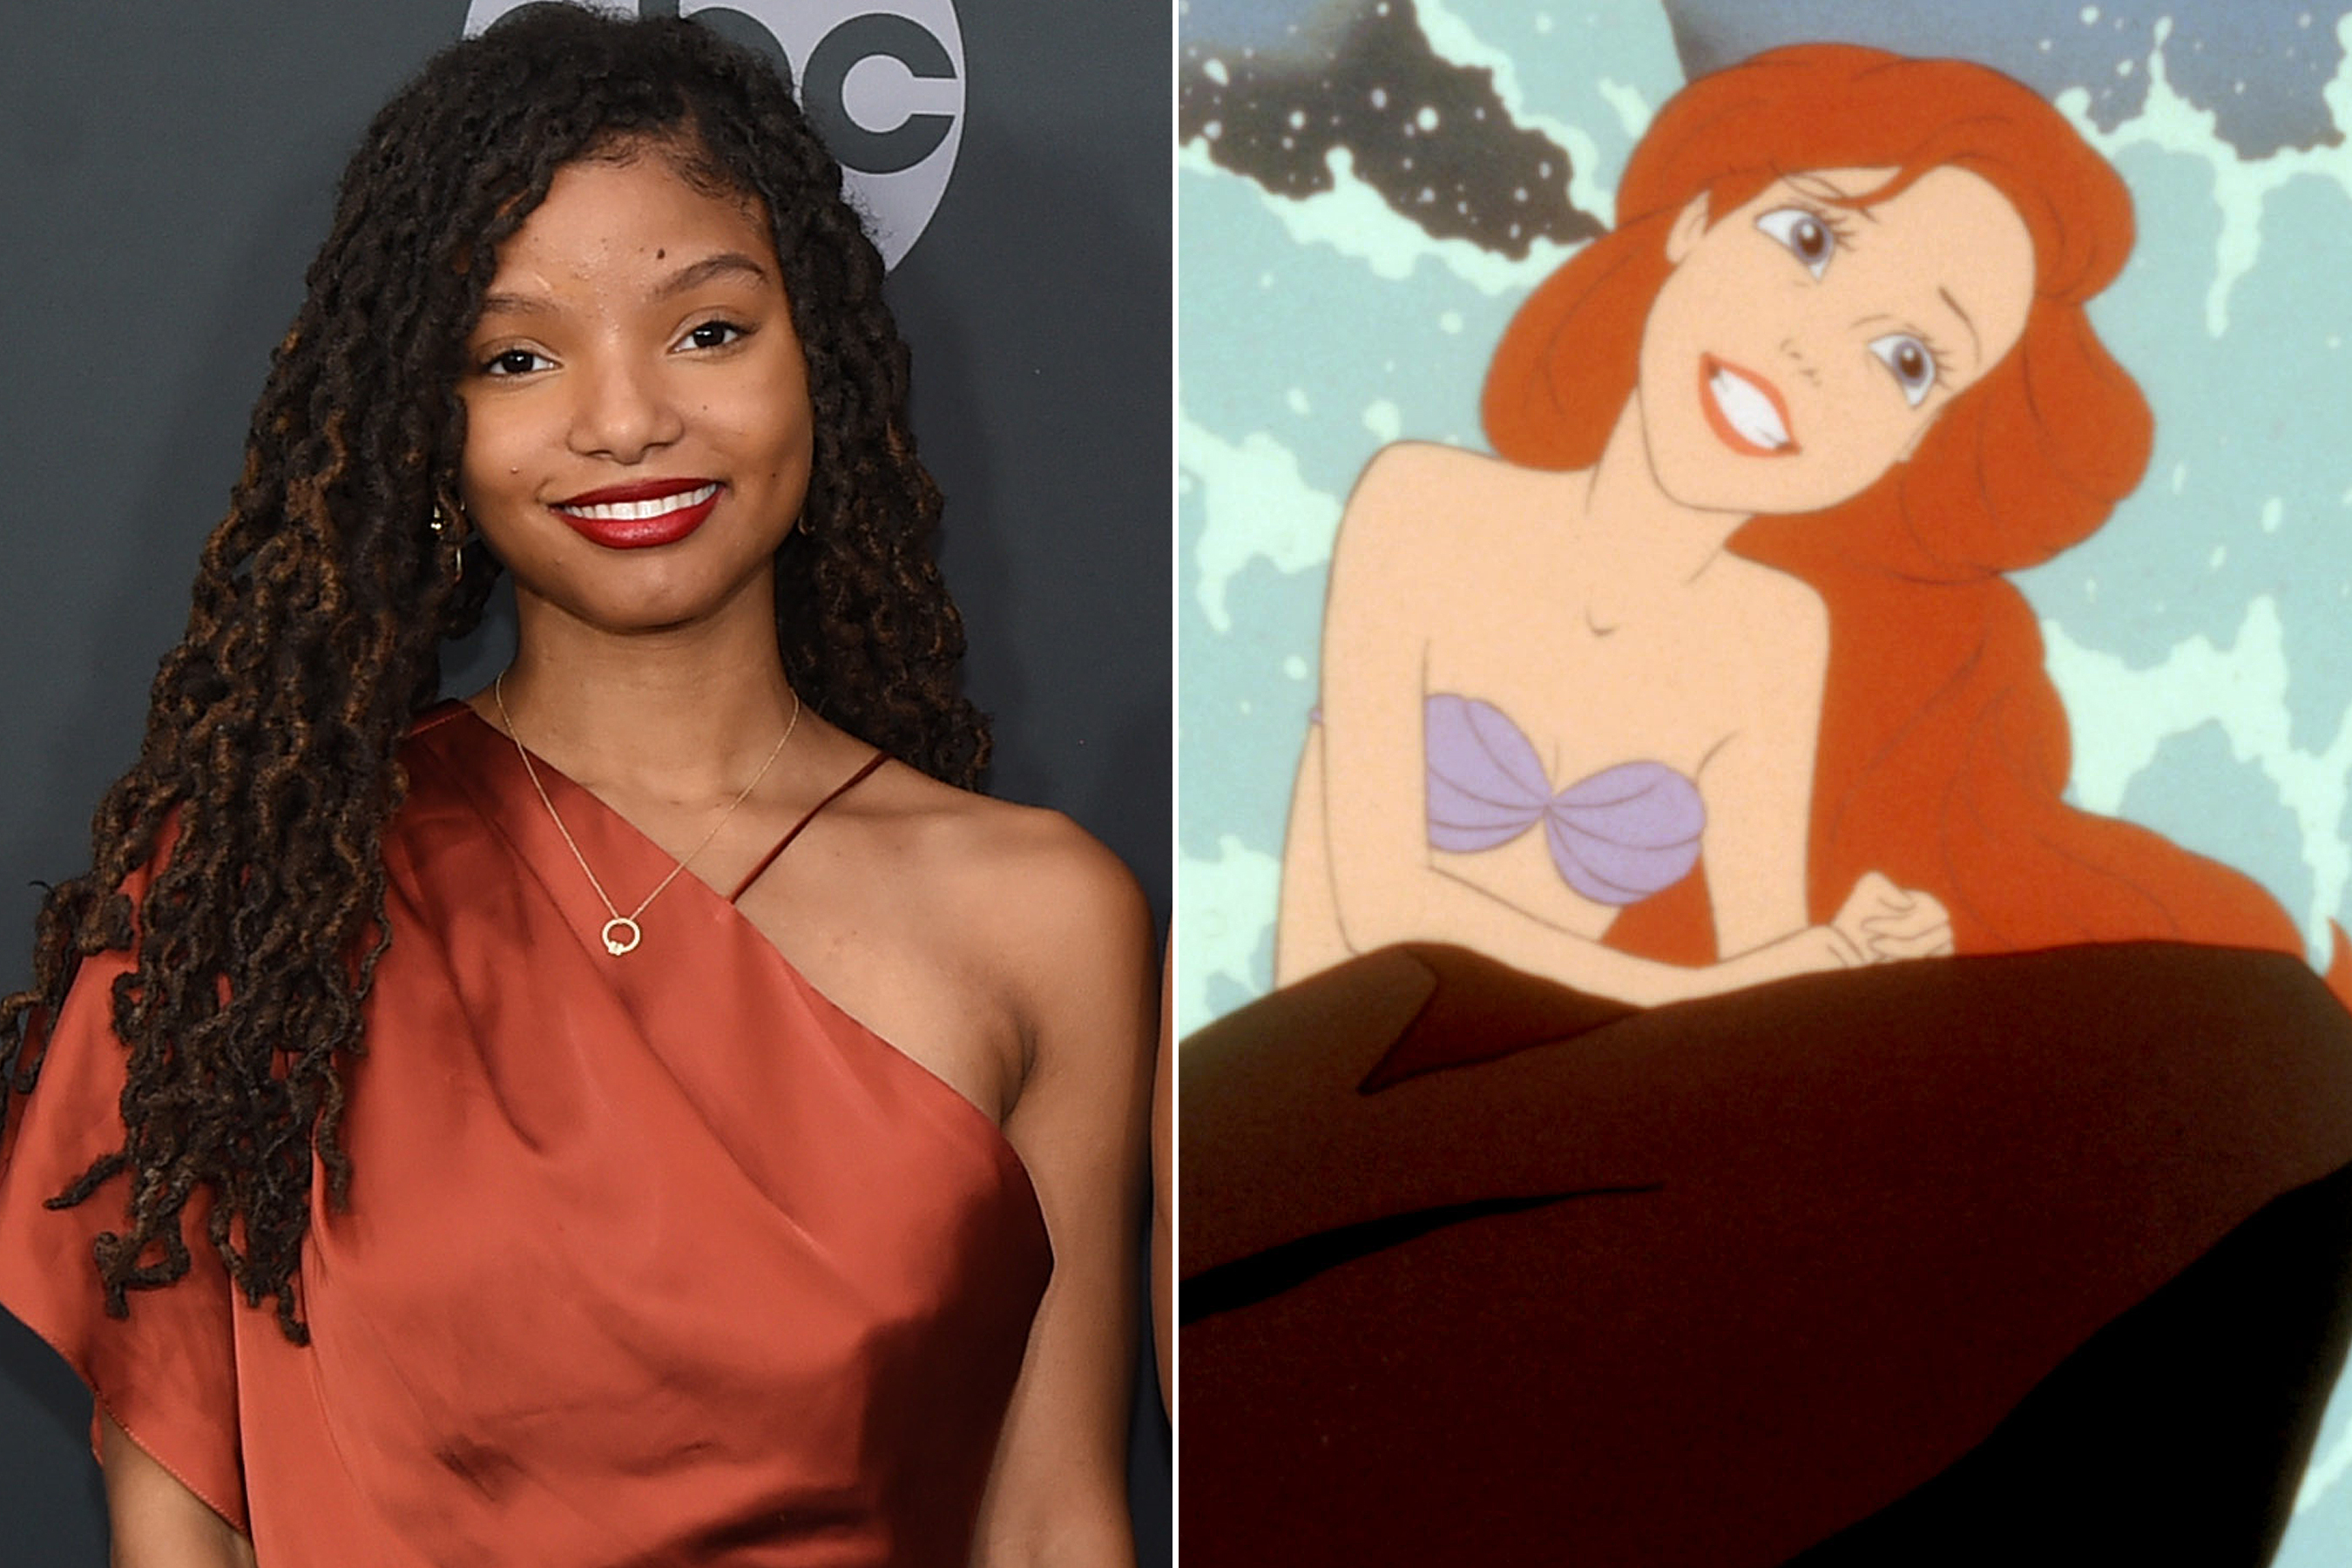 Disney Has Found Its Live-Action Little Mermaid! R&B Singer Halle Bailey Cast as Ariel in Remake